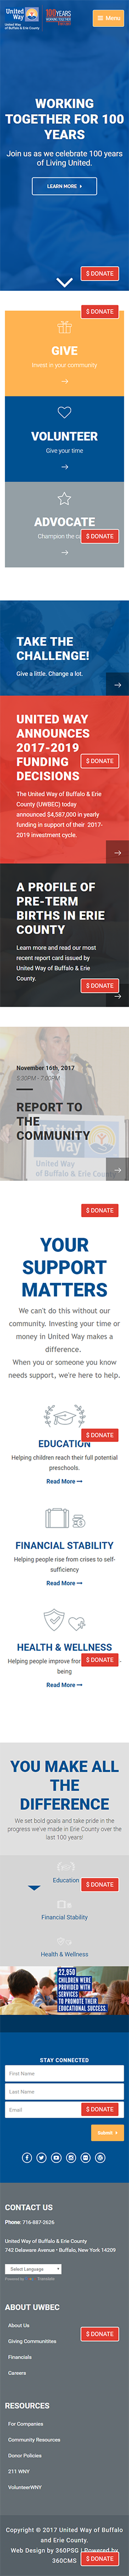 United Way Mobile